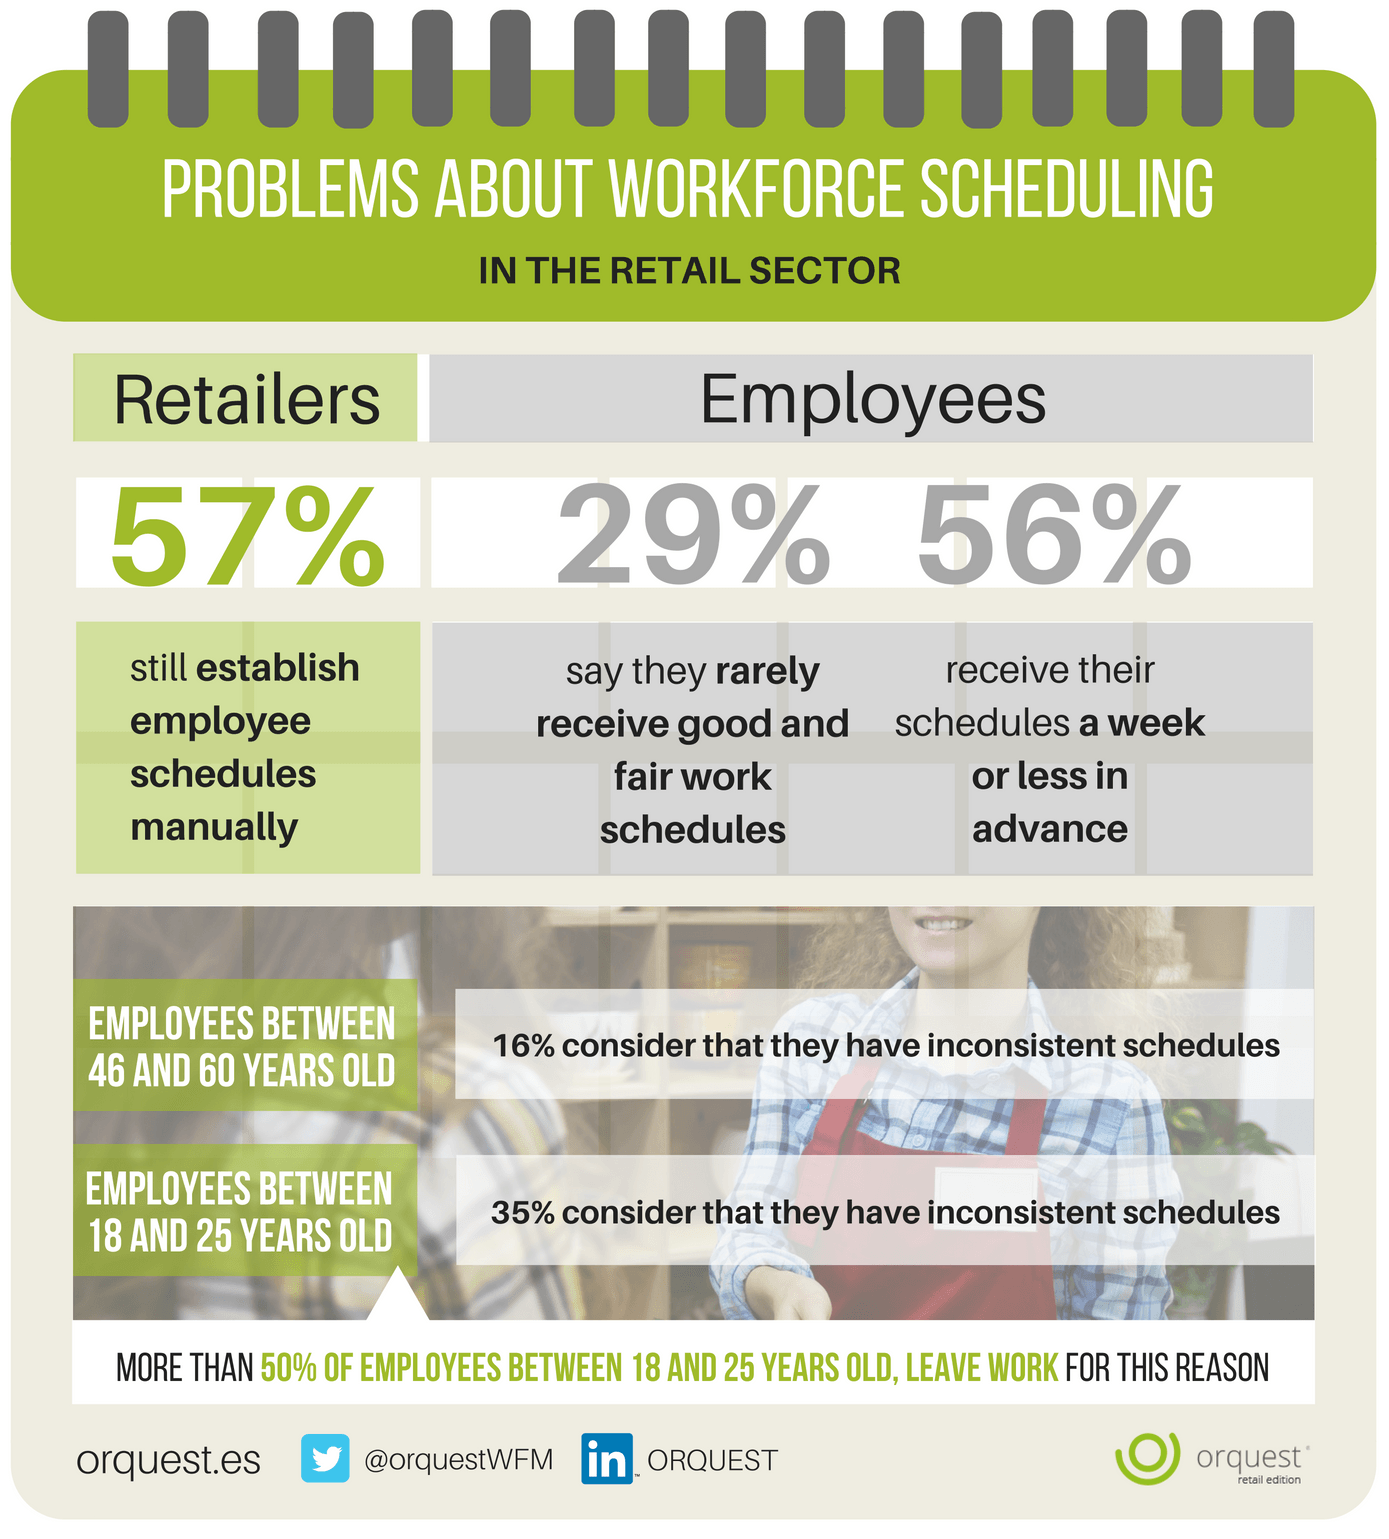 Problems about Workforce Scheduling in the Retail Sector